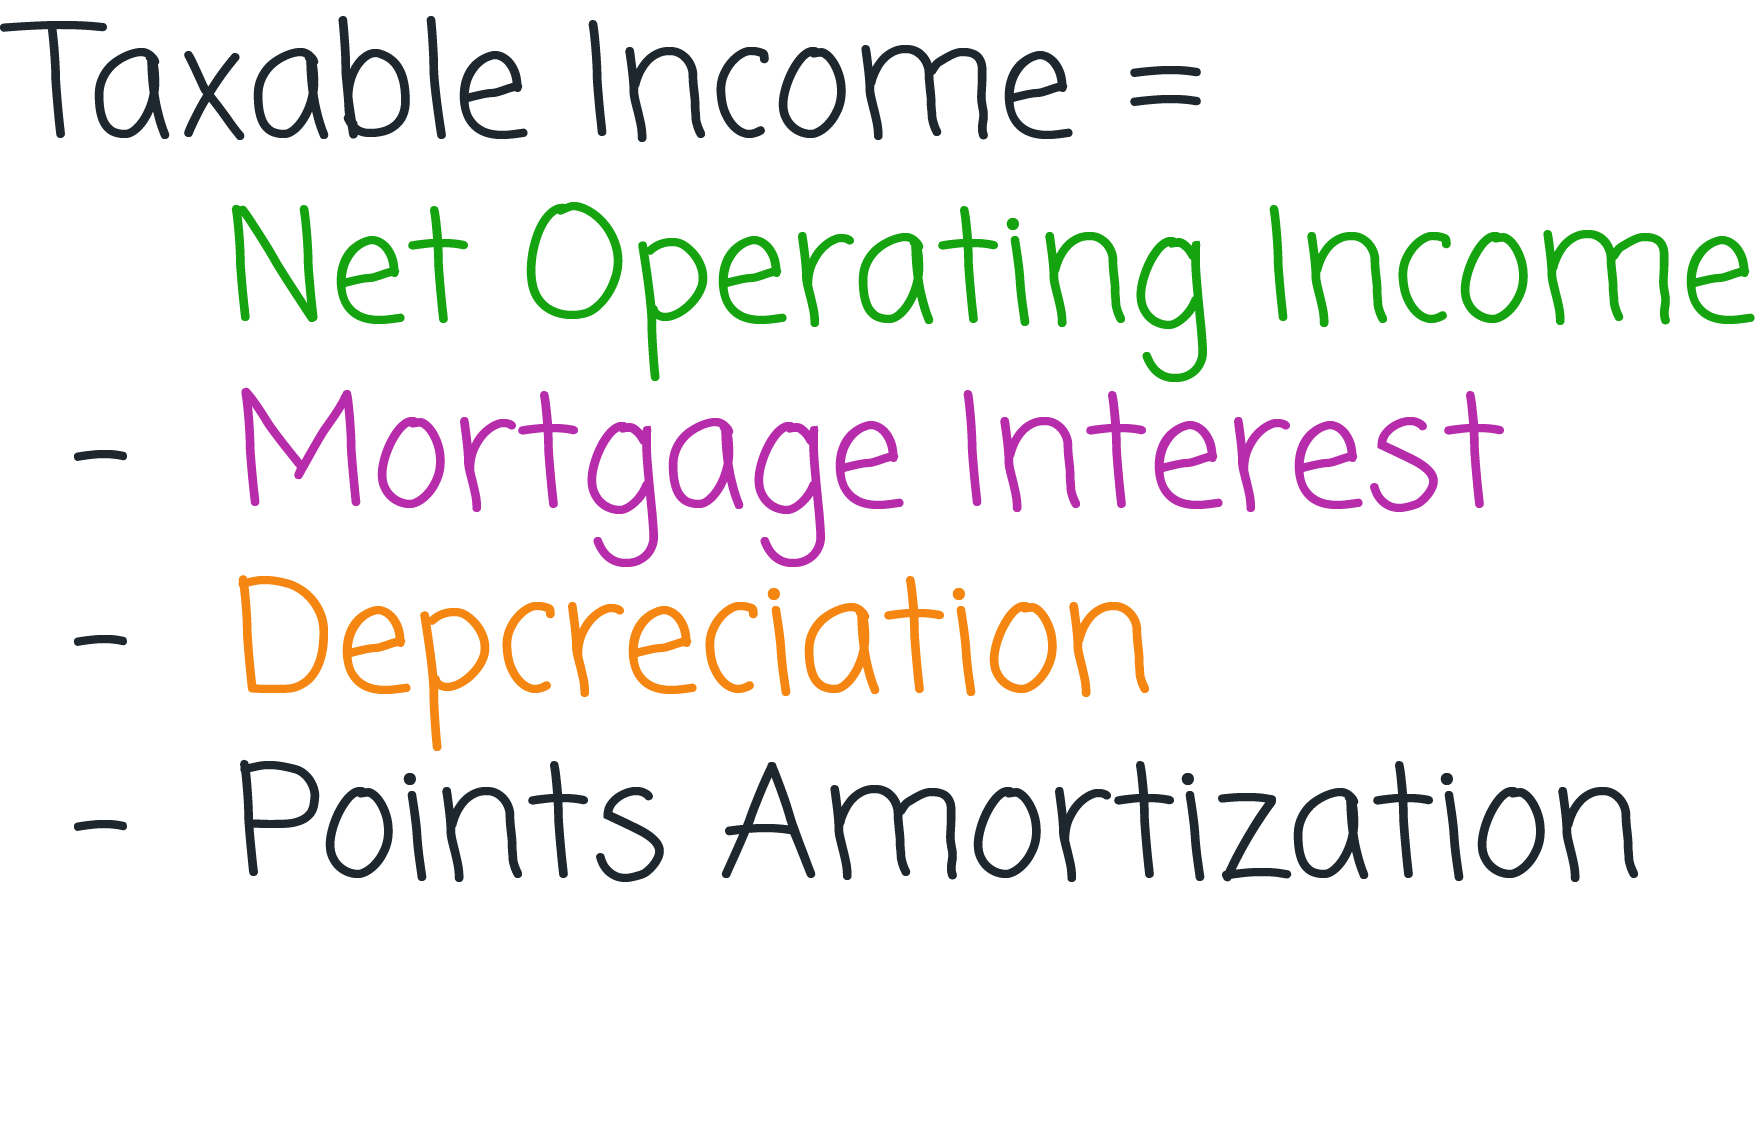 Taxable Income calculation